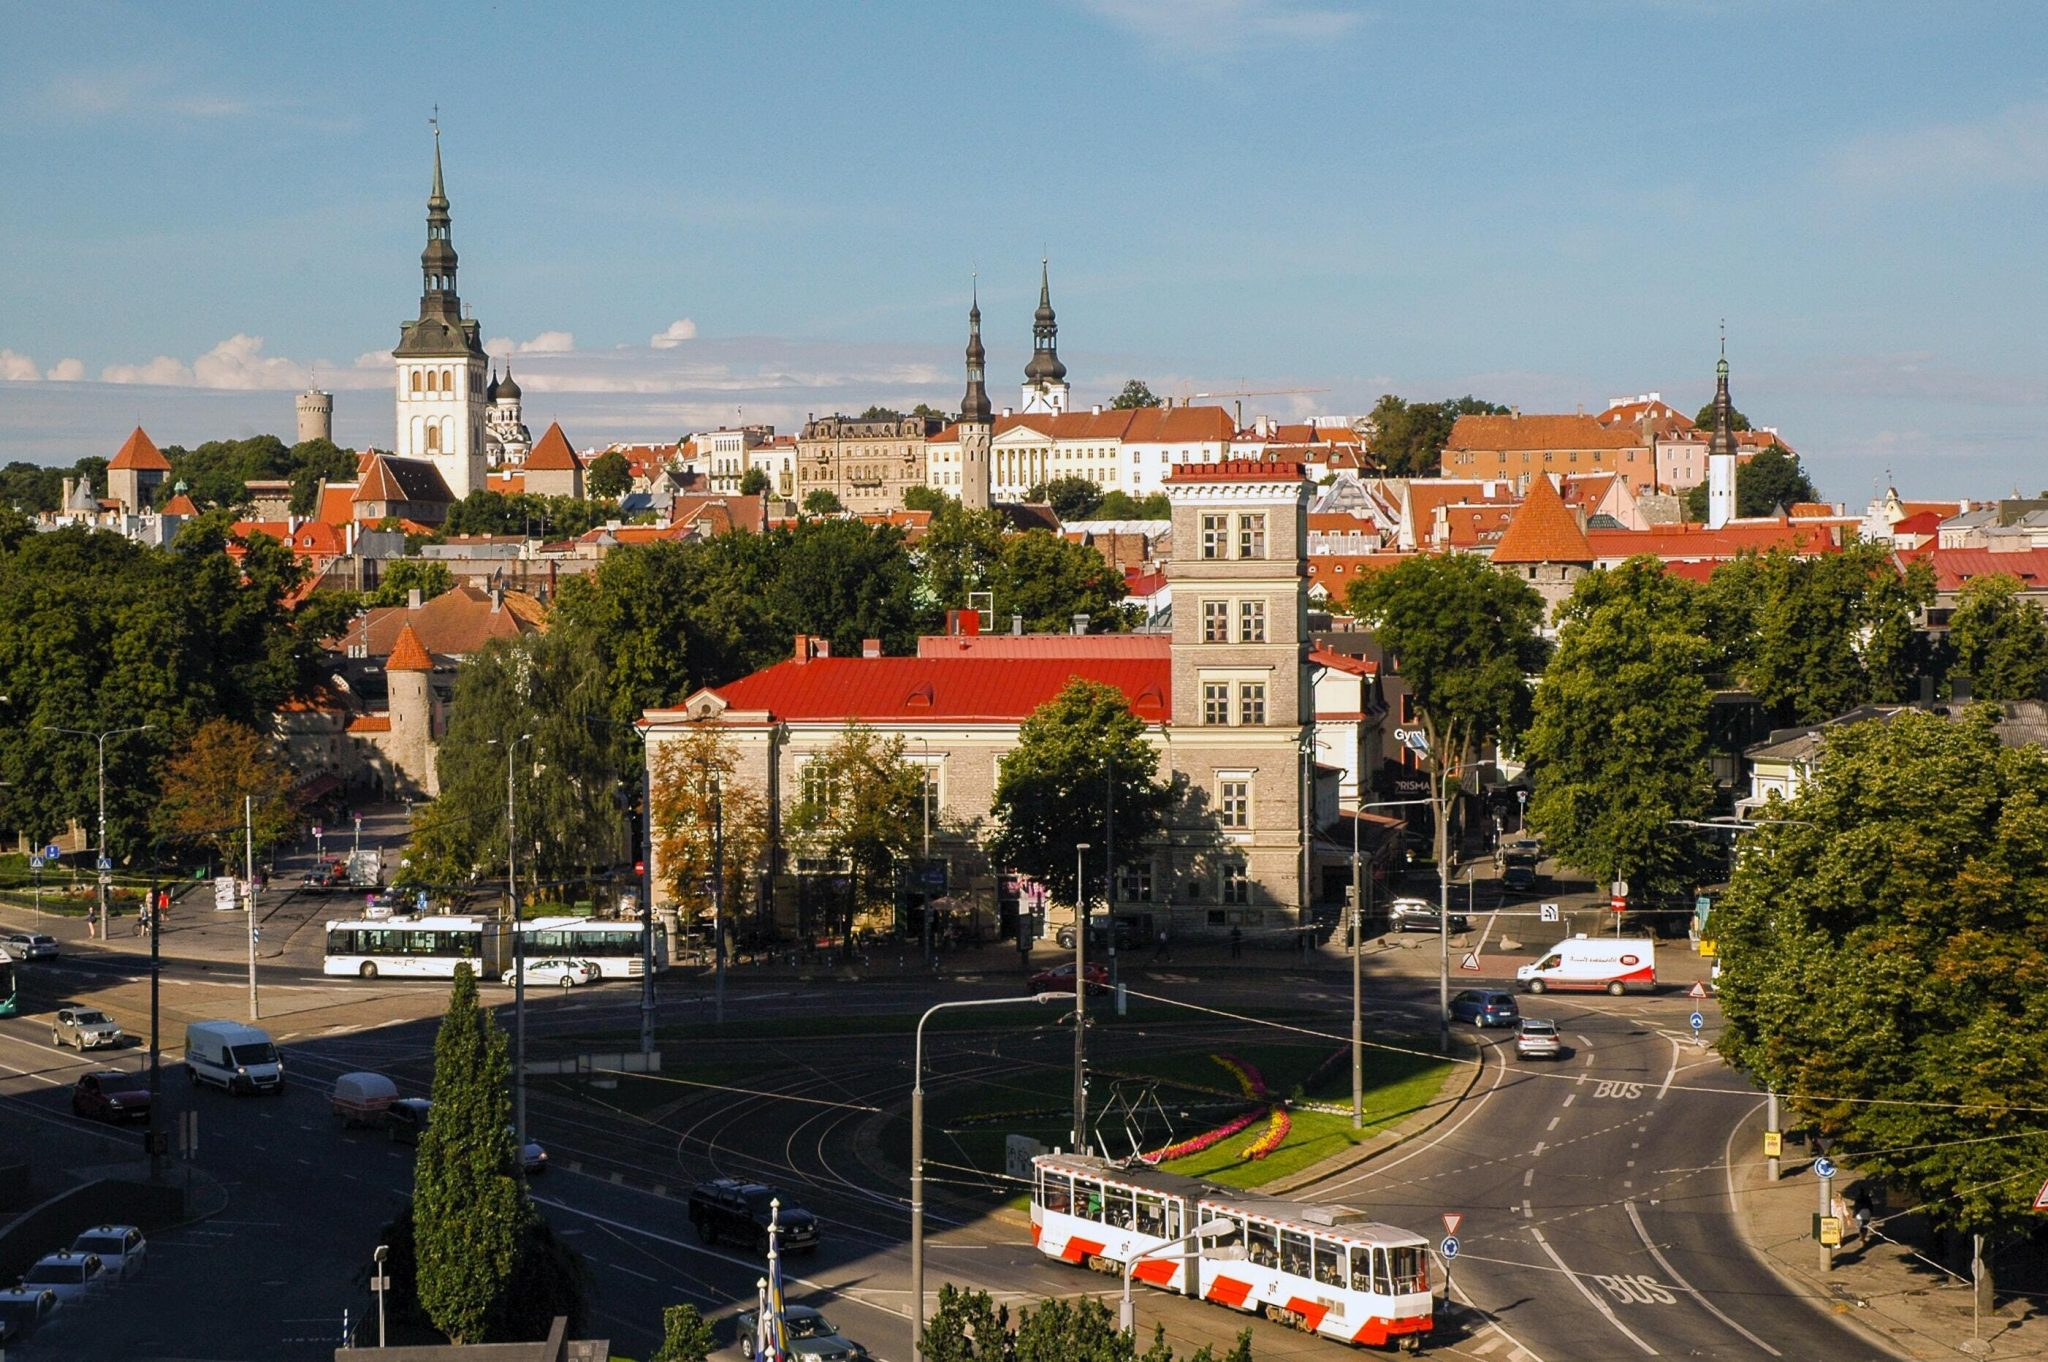 Teaser imagery for The Baltic startups and scaleups to watch in 2021